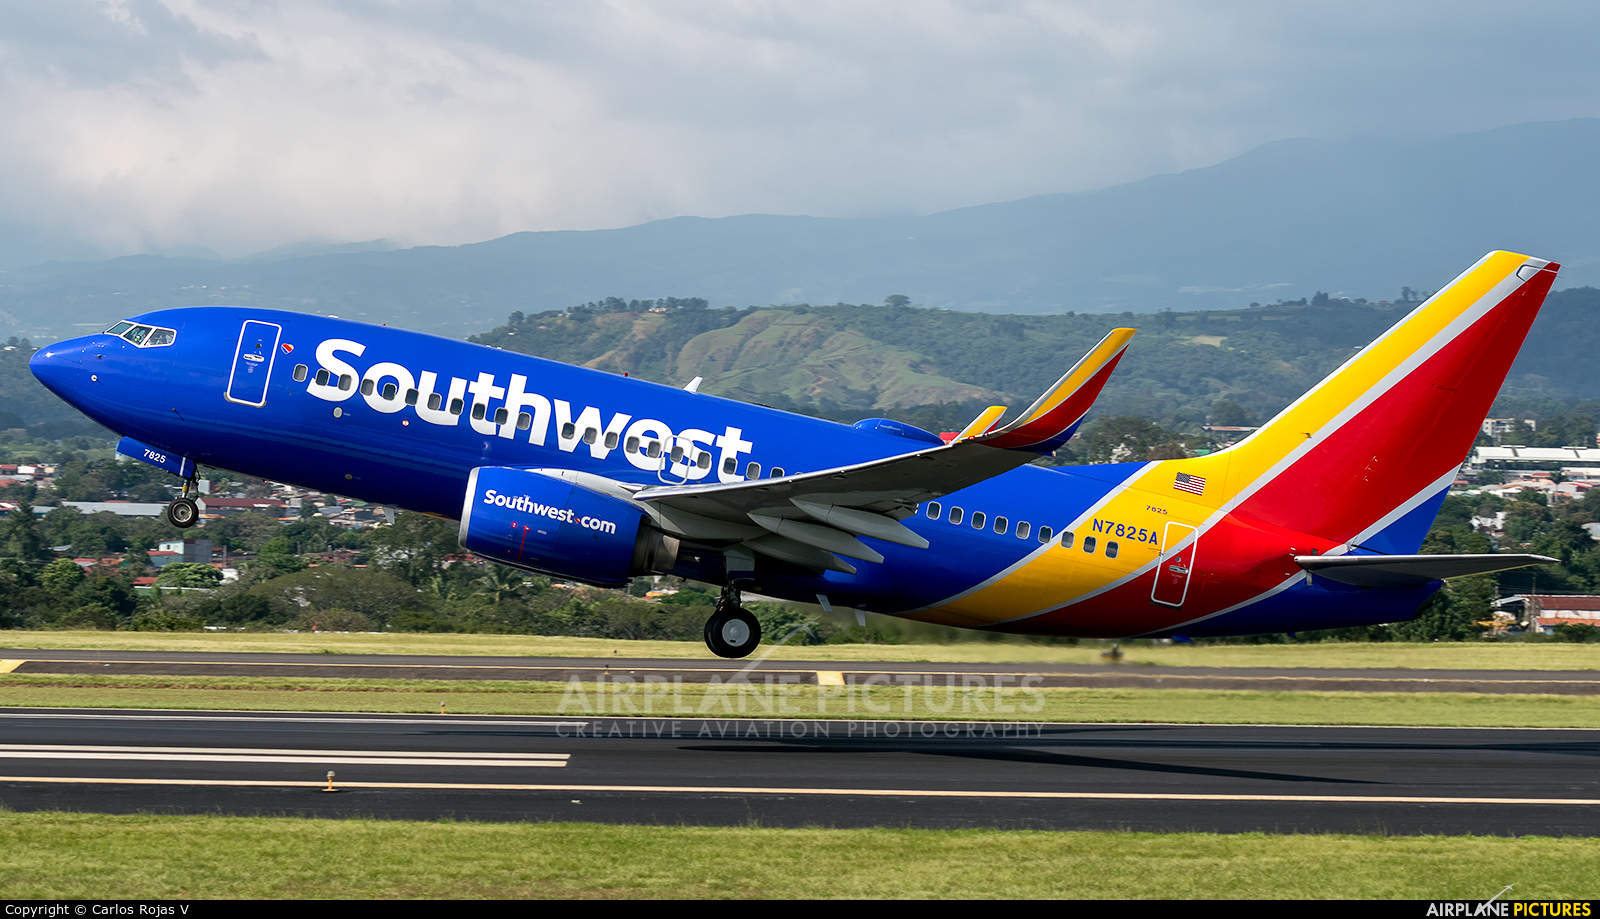 Southwest to start serving Cuba?